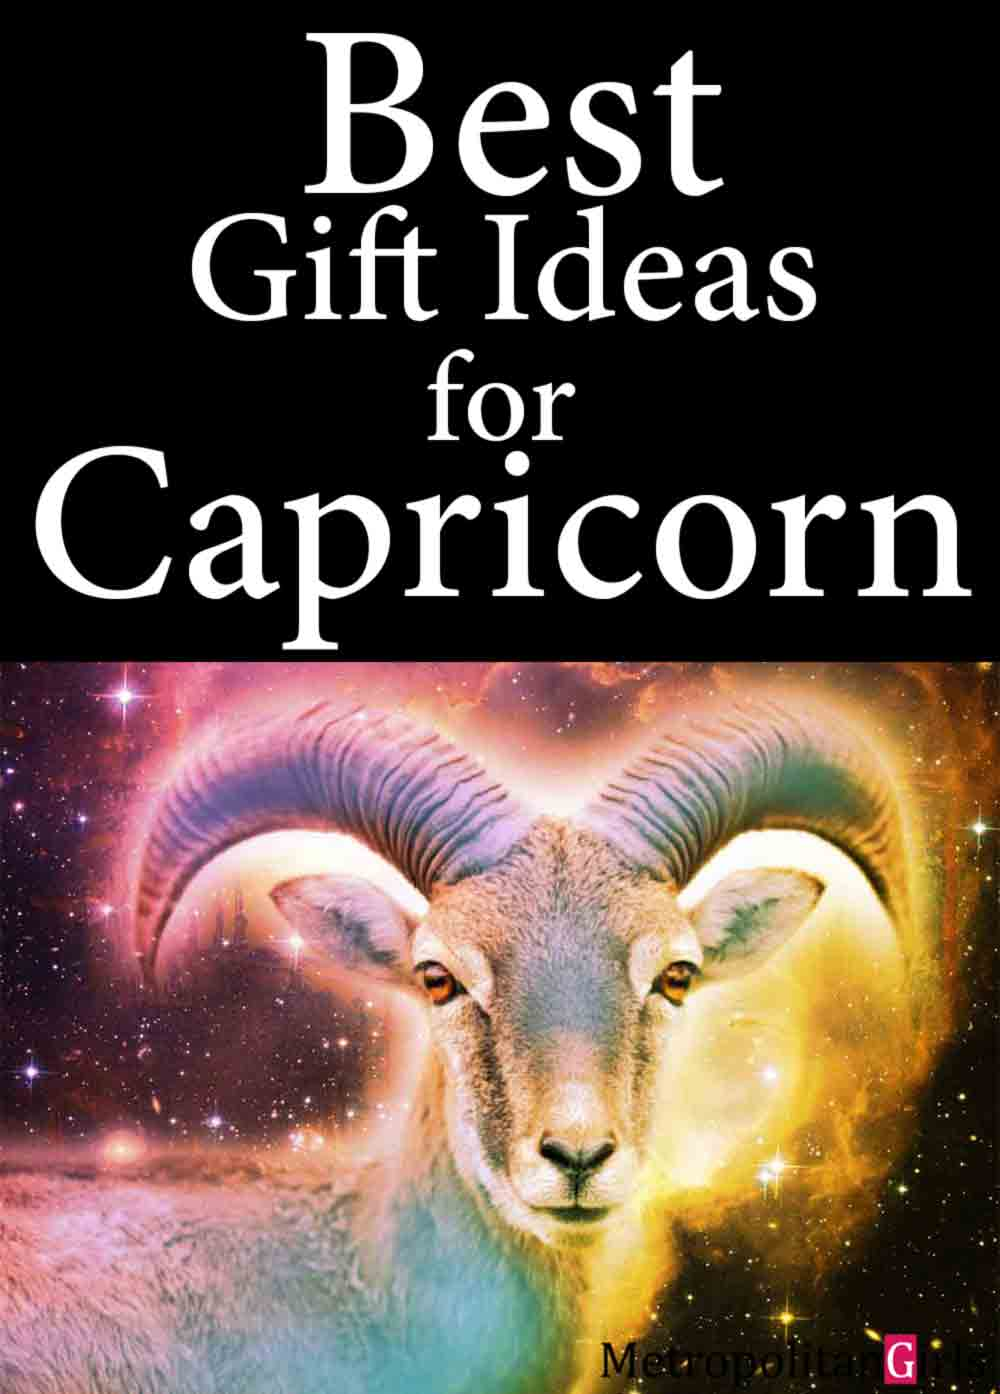 Find out what gifts does Capricorn like in this zodiac gift guide.